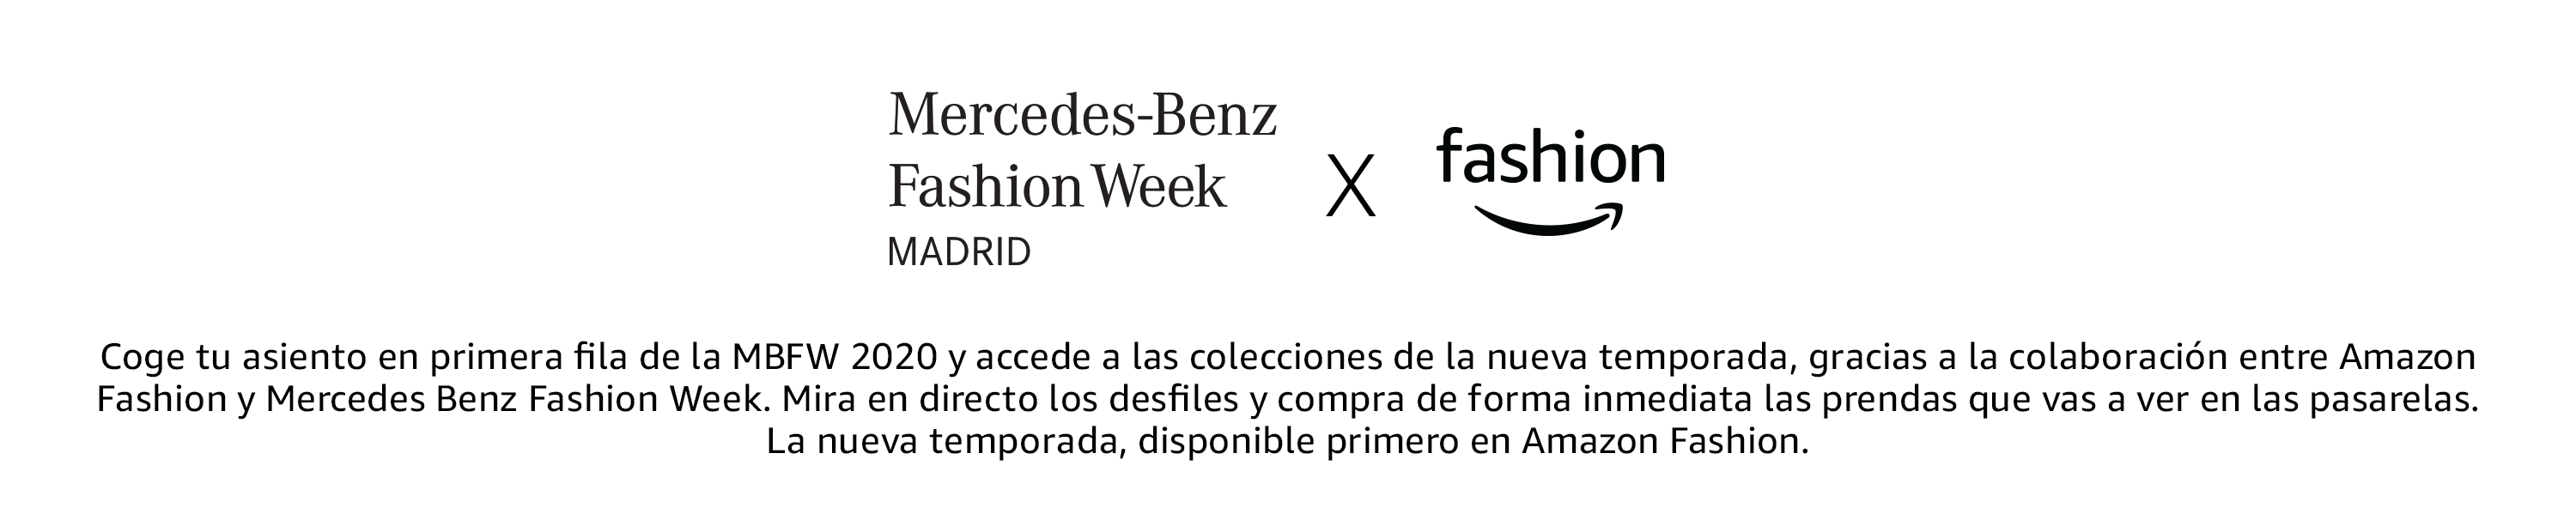 Mercedes-Benz Fashion Week x Amazon Fashion